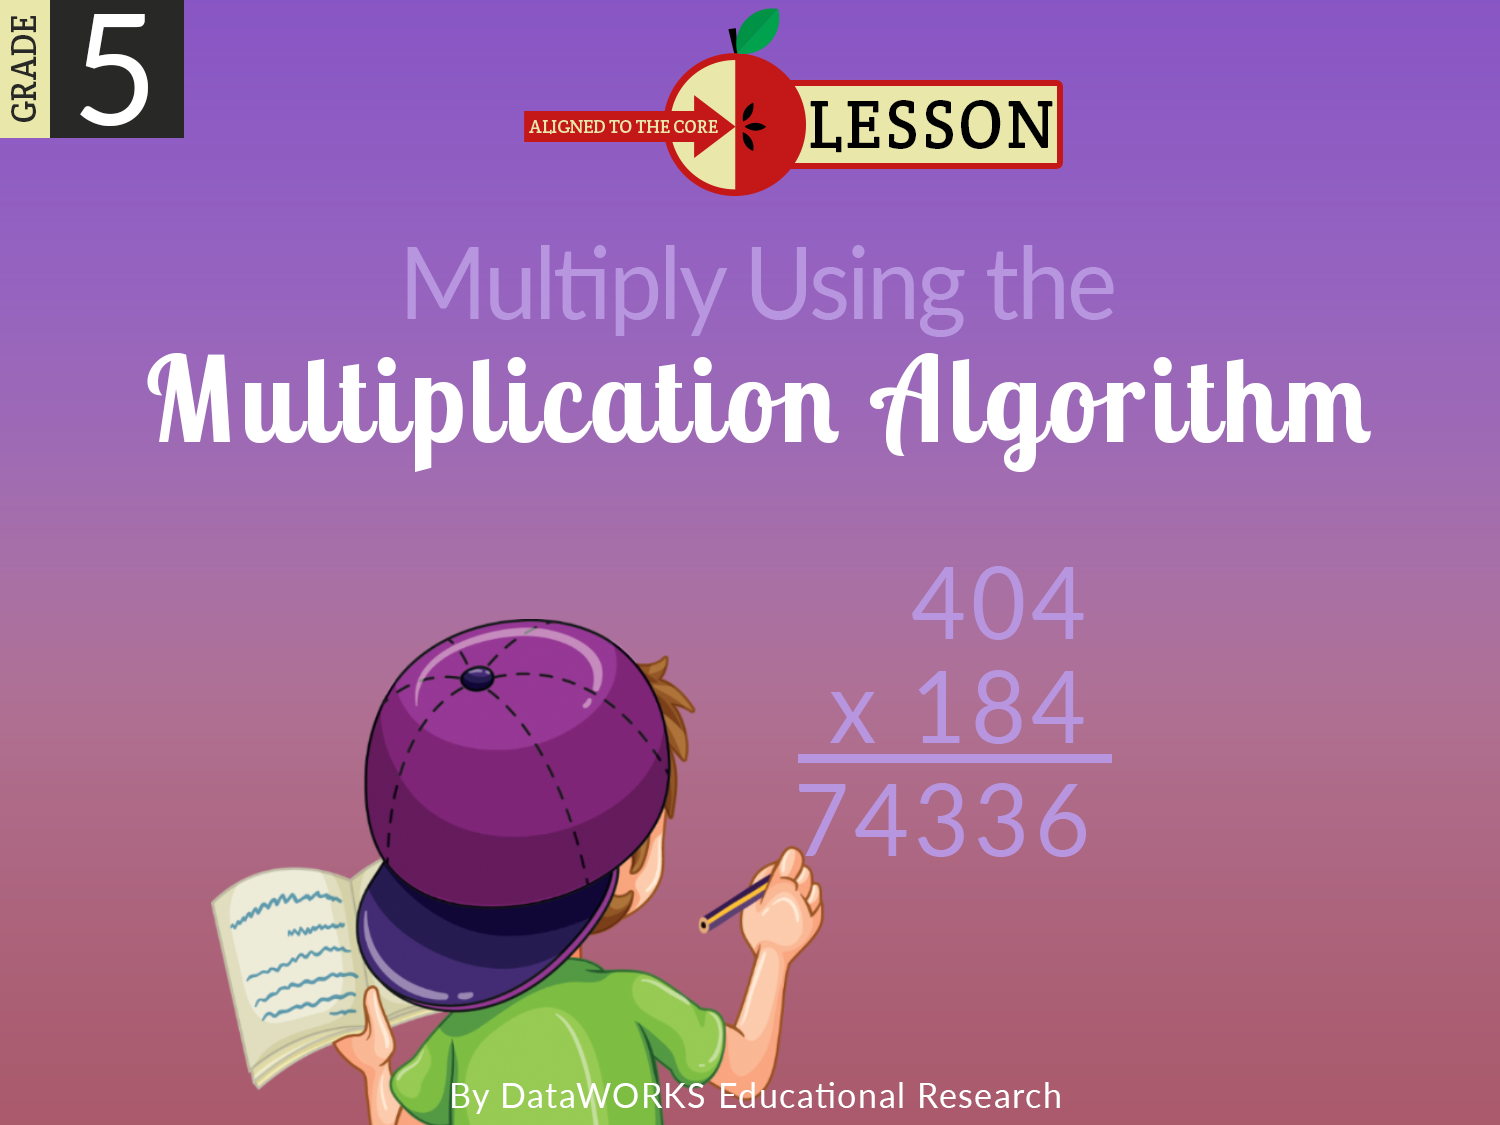 Multiply Using the Multiplication Algorithm